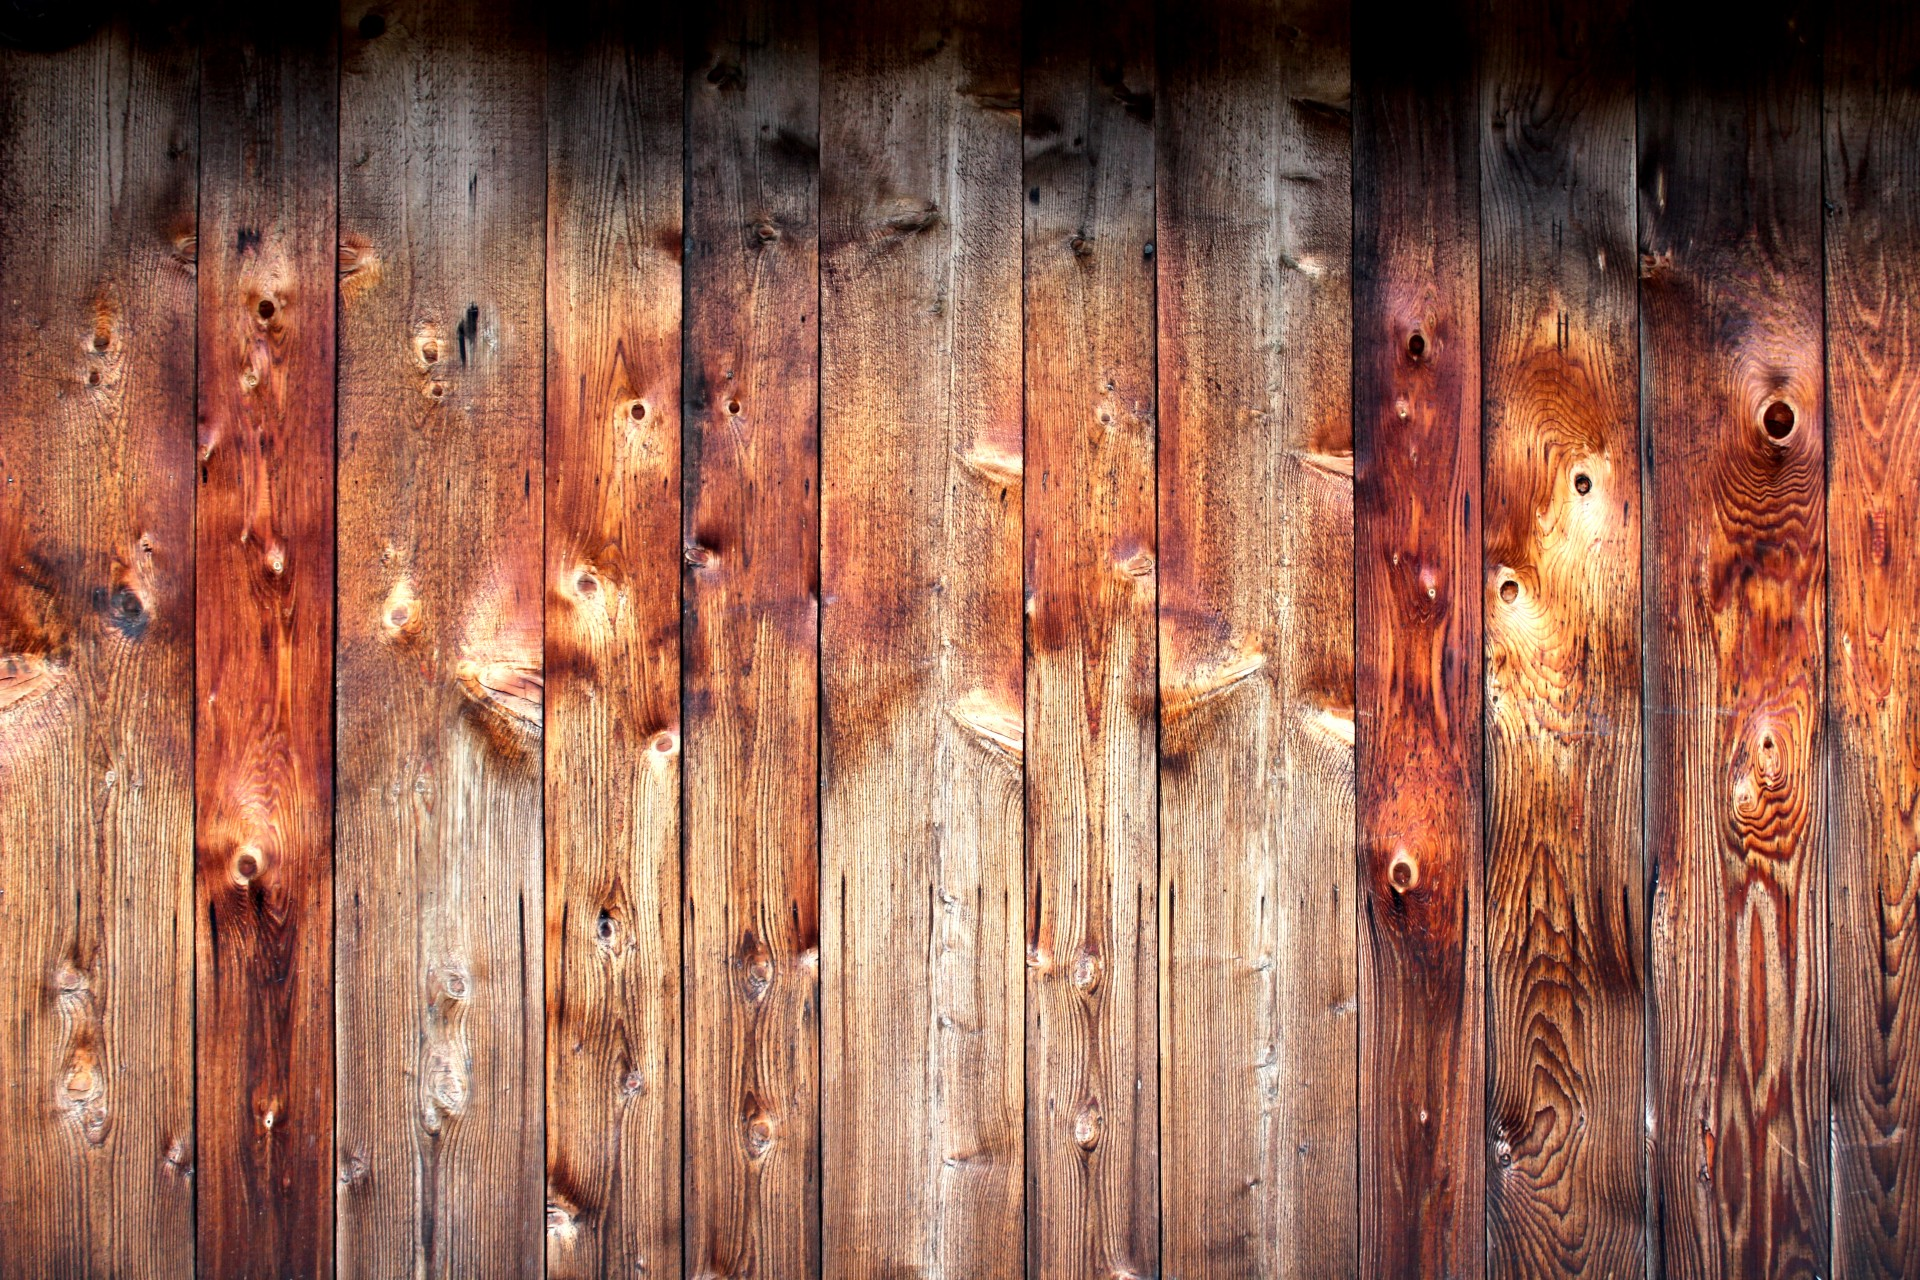 rustic barn wood background   Recette 1920x1280